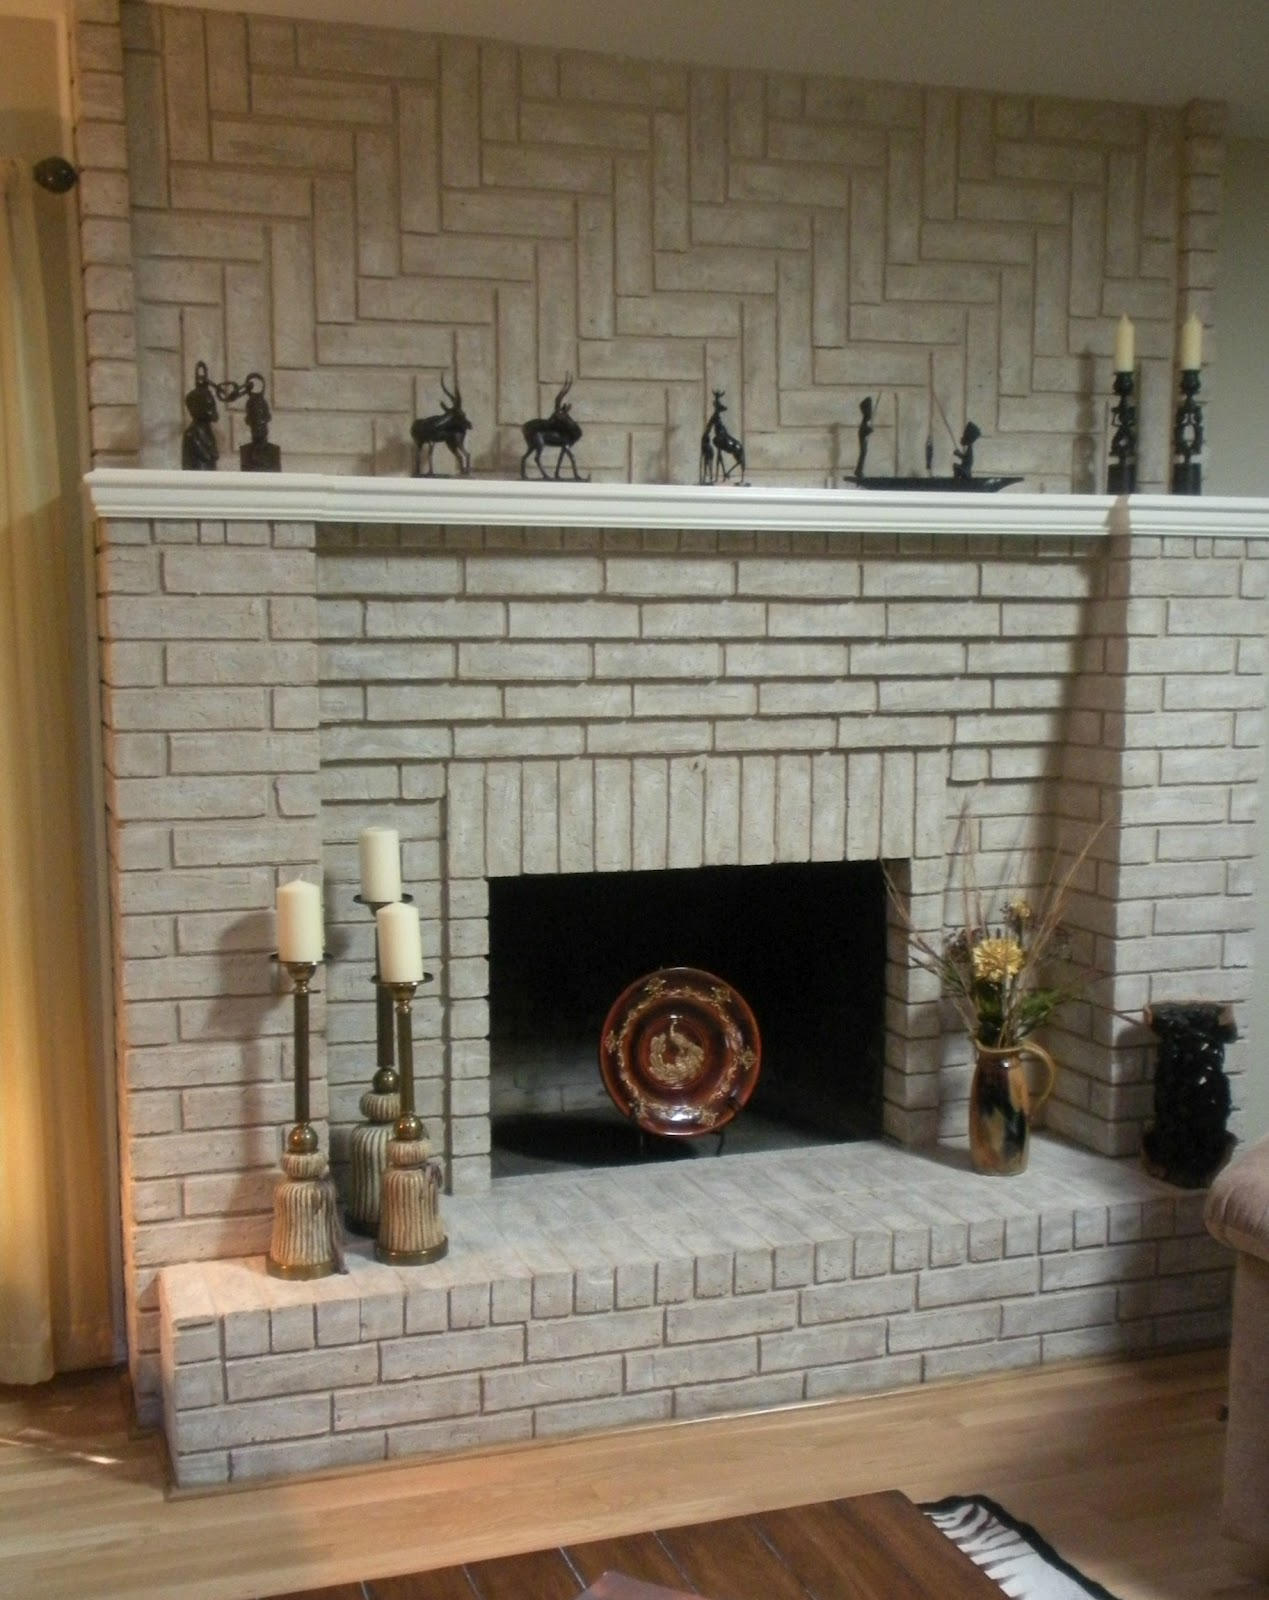 Fireplace decorating february 2012 for Bricks painting design